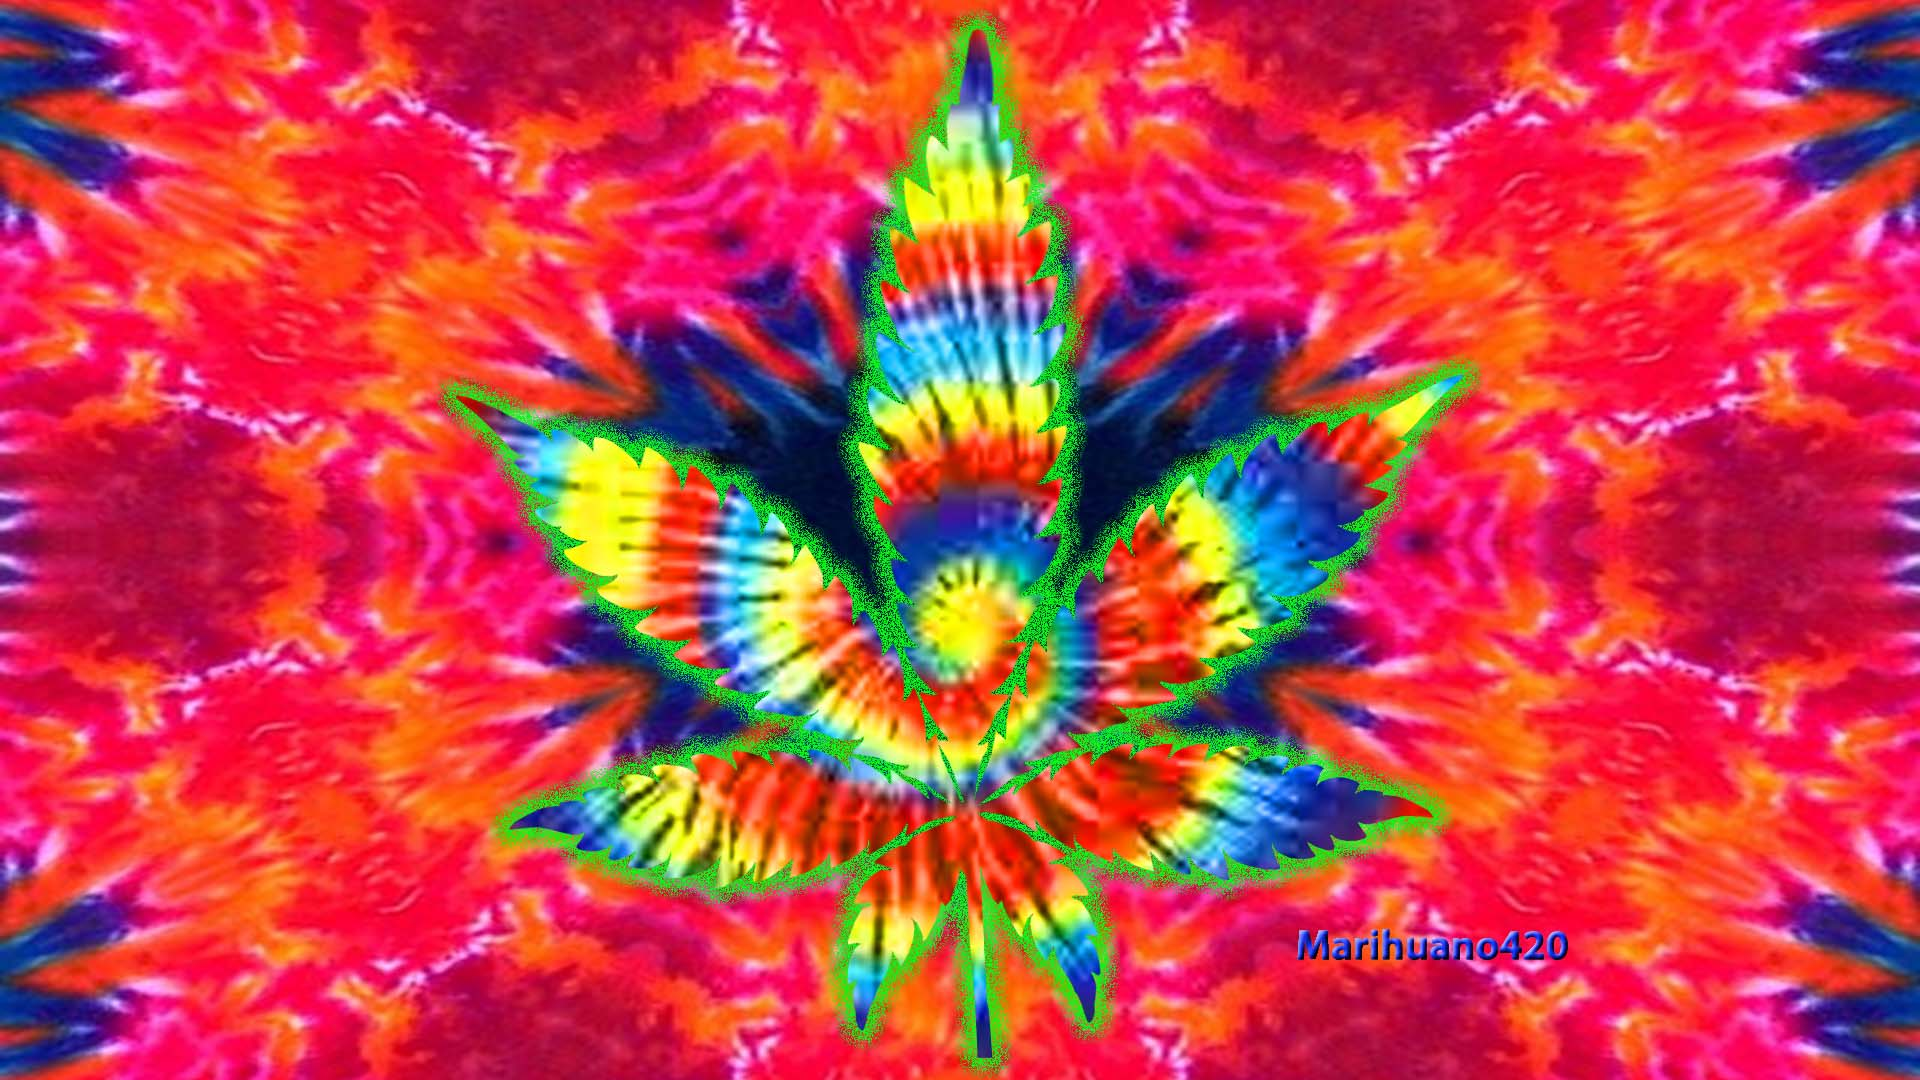 Triipy clipart hd wallpaper Wallpapers Natures Wallpapers more Psychedelic